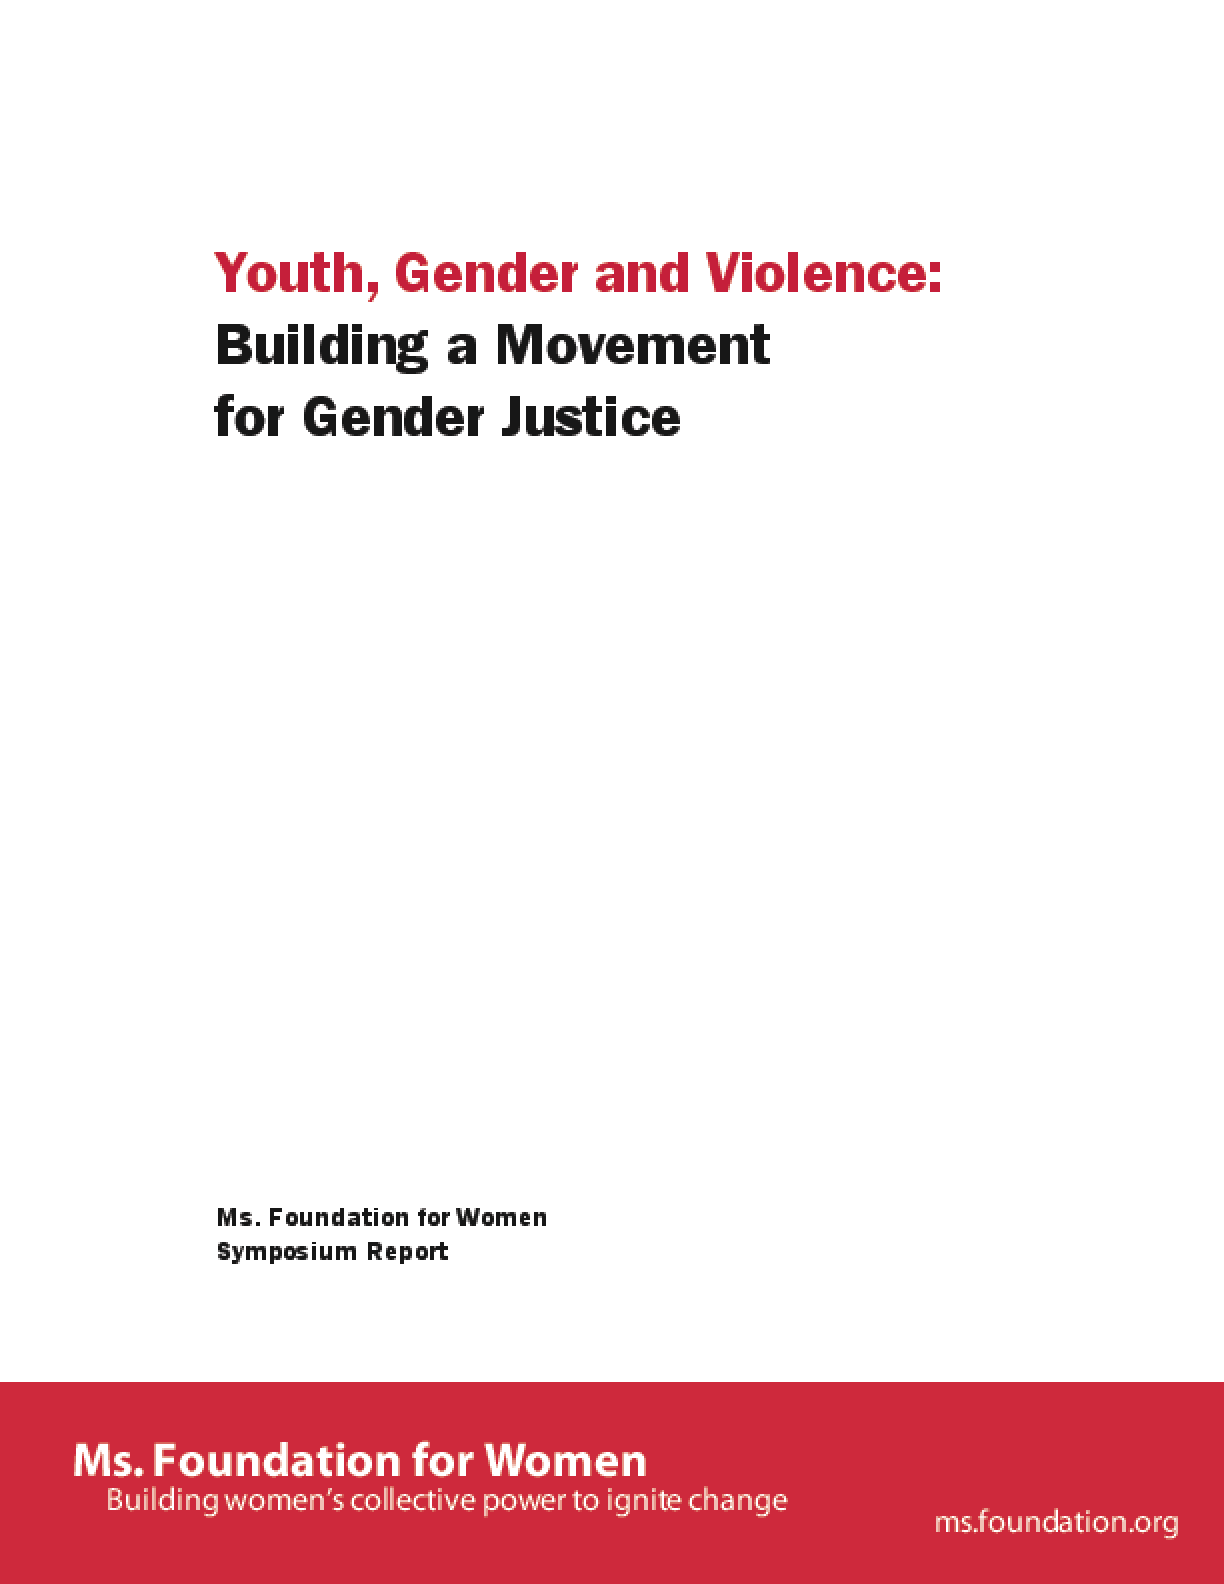 Youth, Gender and Violence: Building a Movement for Gender Justice, Symposium Report